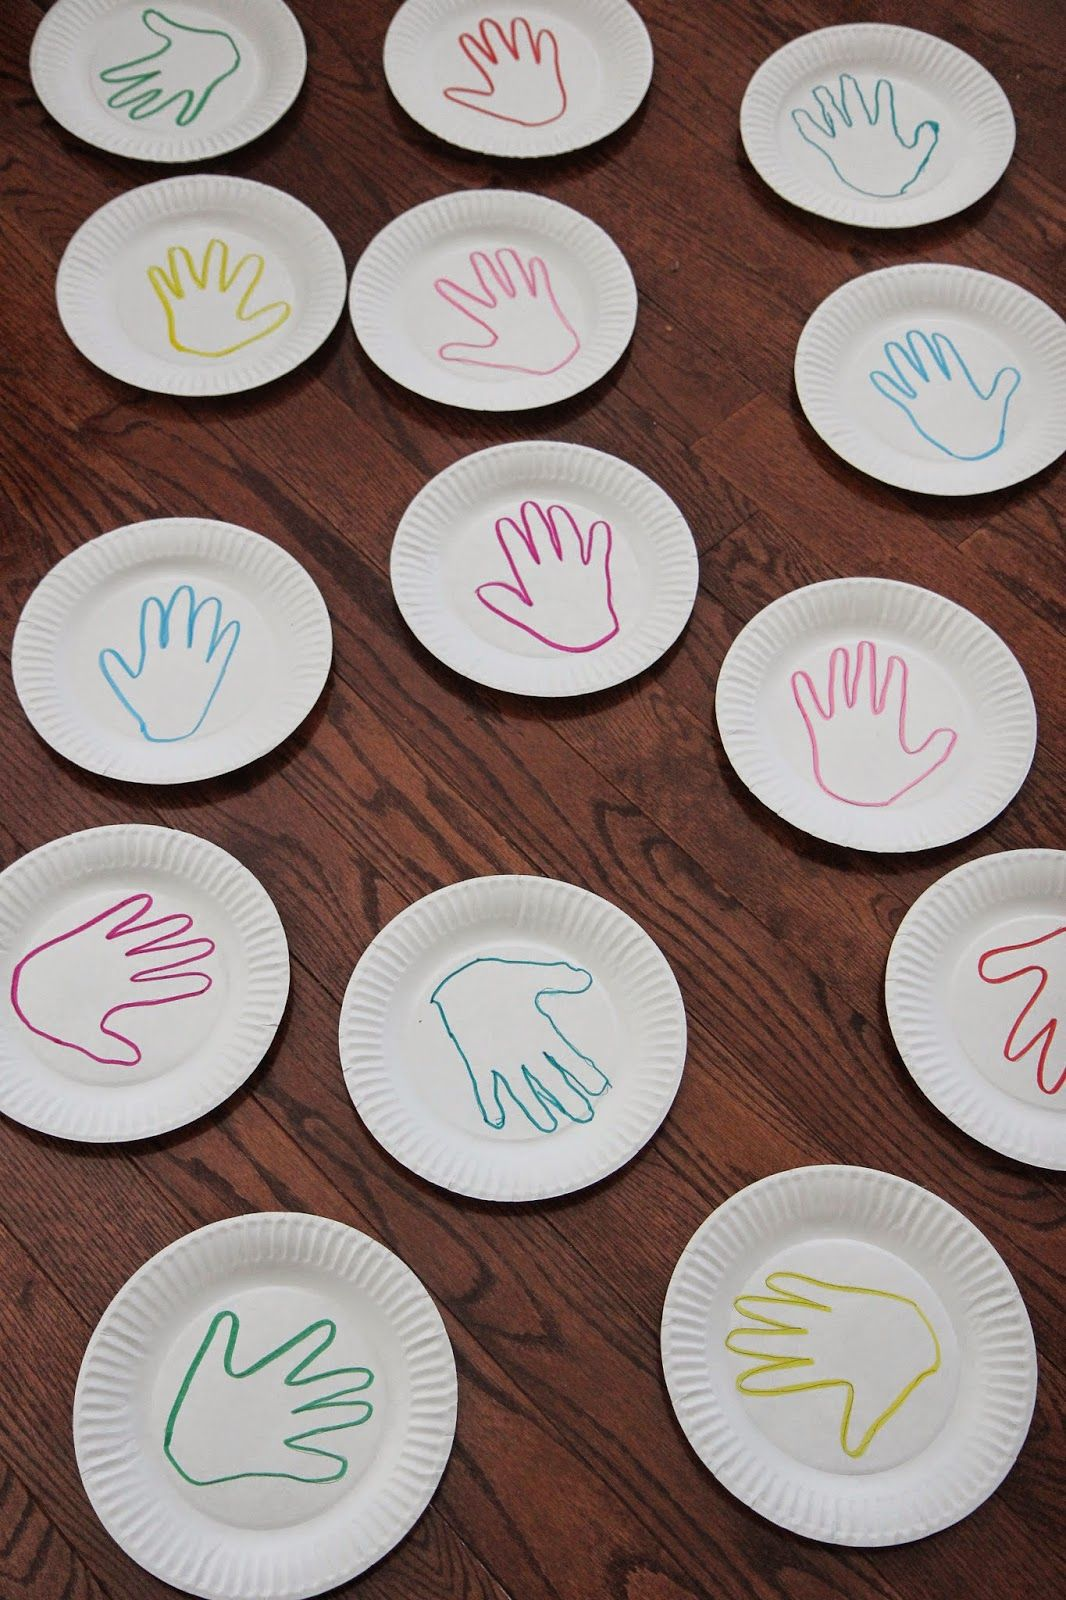 Handprint Color Matching Game Virtual Book Club for Kids